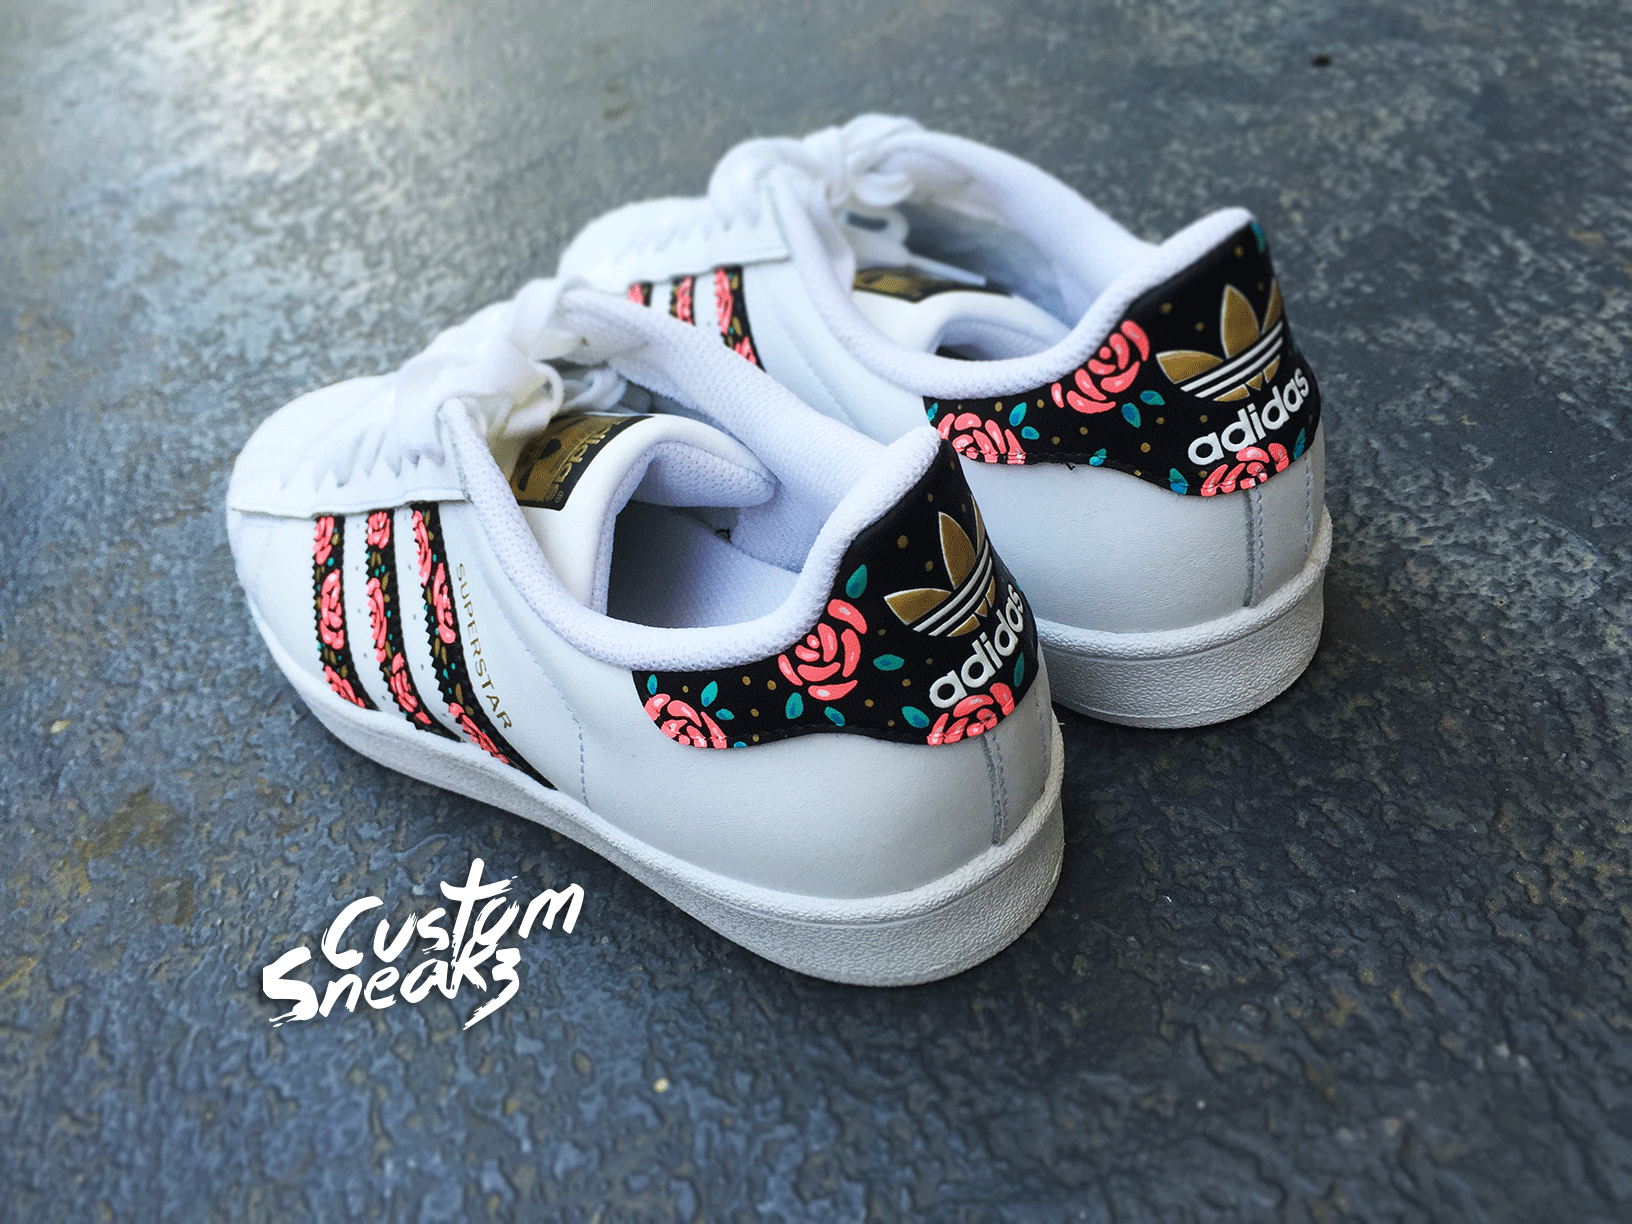 half off ceeec 9383f Custom Adidas Superstar for men and women, Adidas custom Hand Painted  floral design, Unisex sizes, Adidas superstar, Original